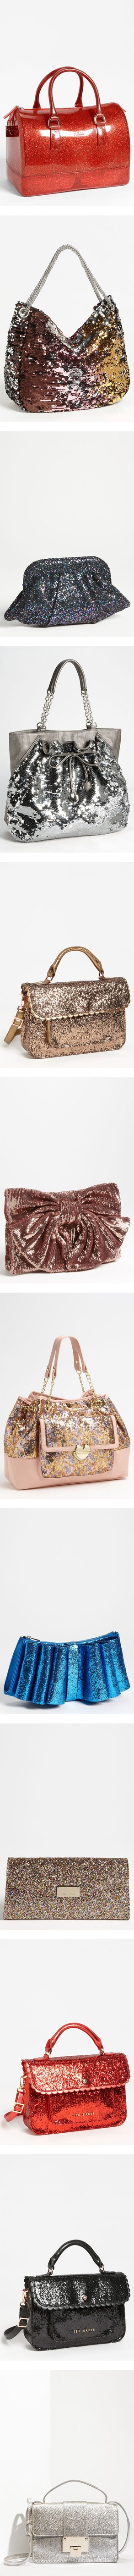 """""""NORDSTROM: Bags that Sparkle"""" by nordstrom on Polyvore   - NORDSTROM: Bags that scream """"I'm a prostitute"""""""